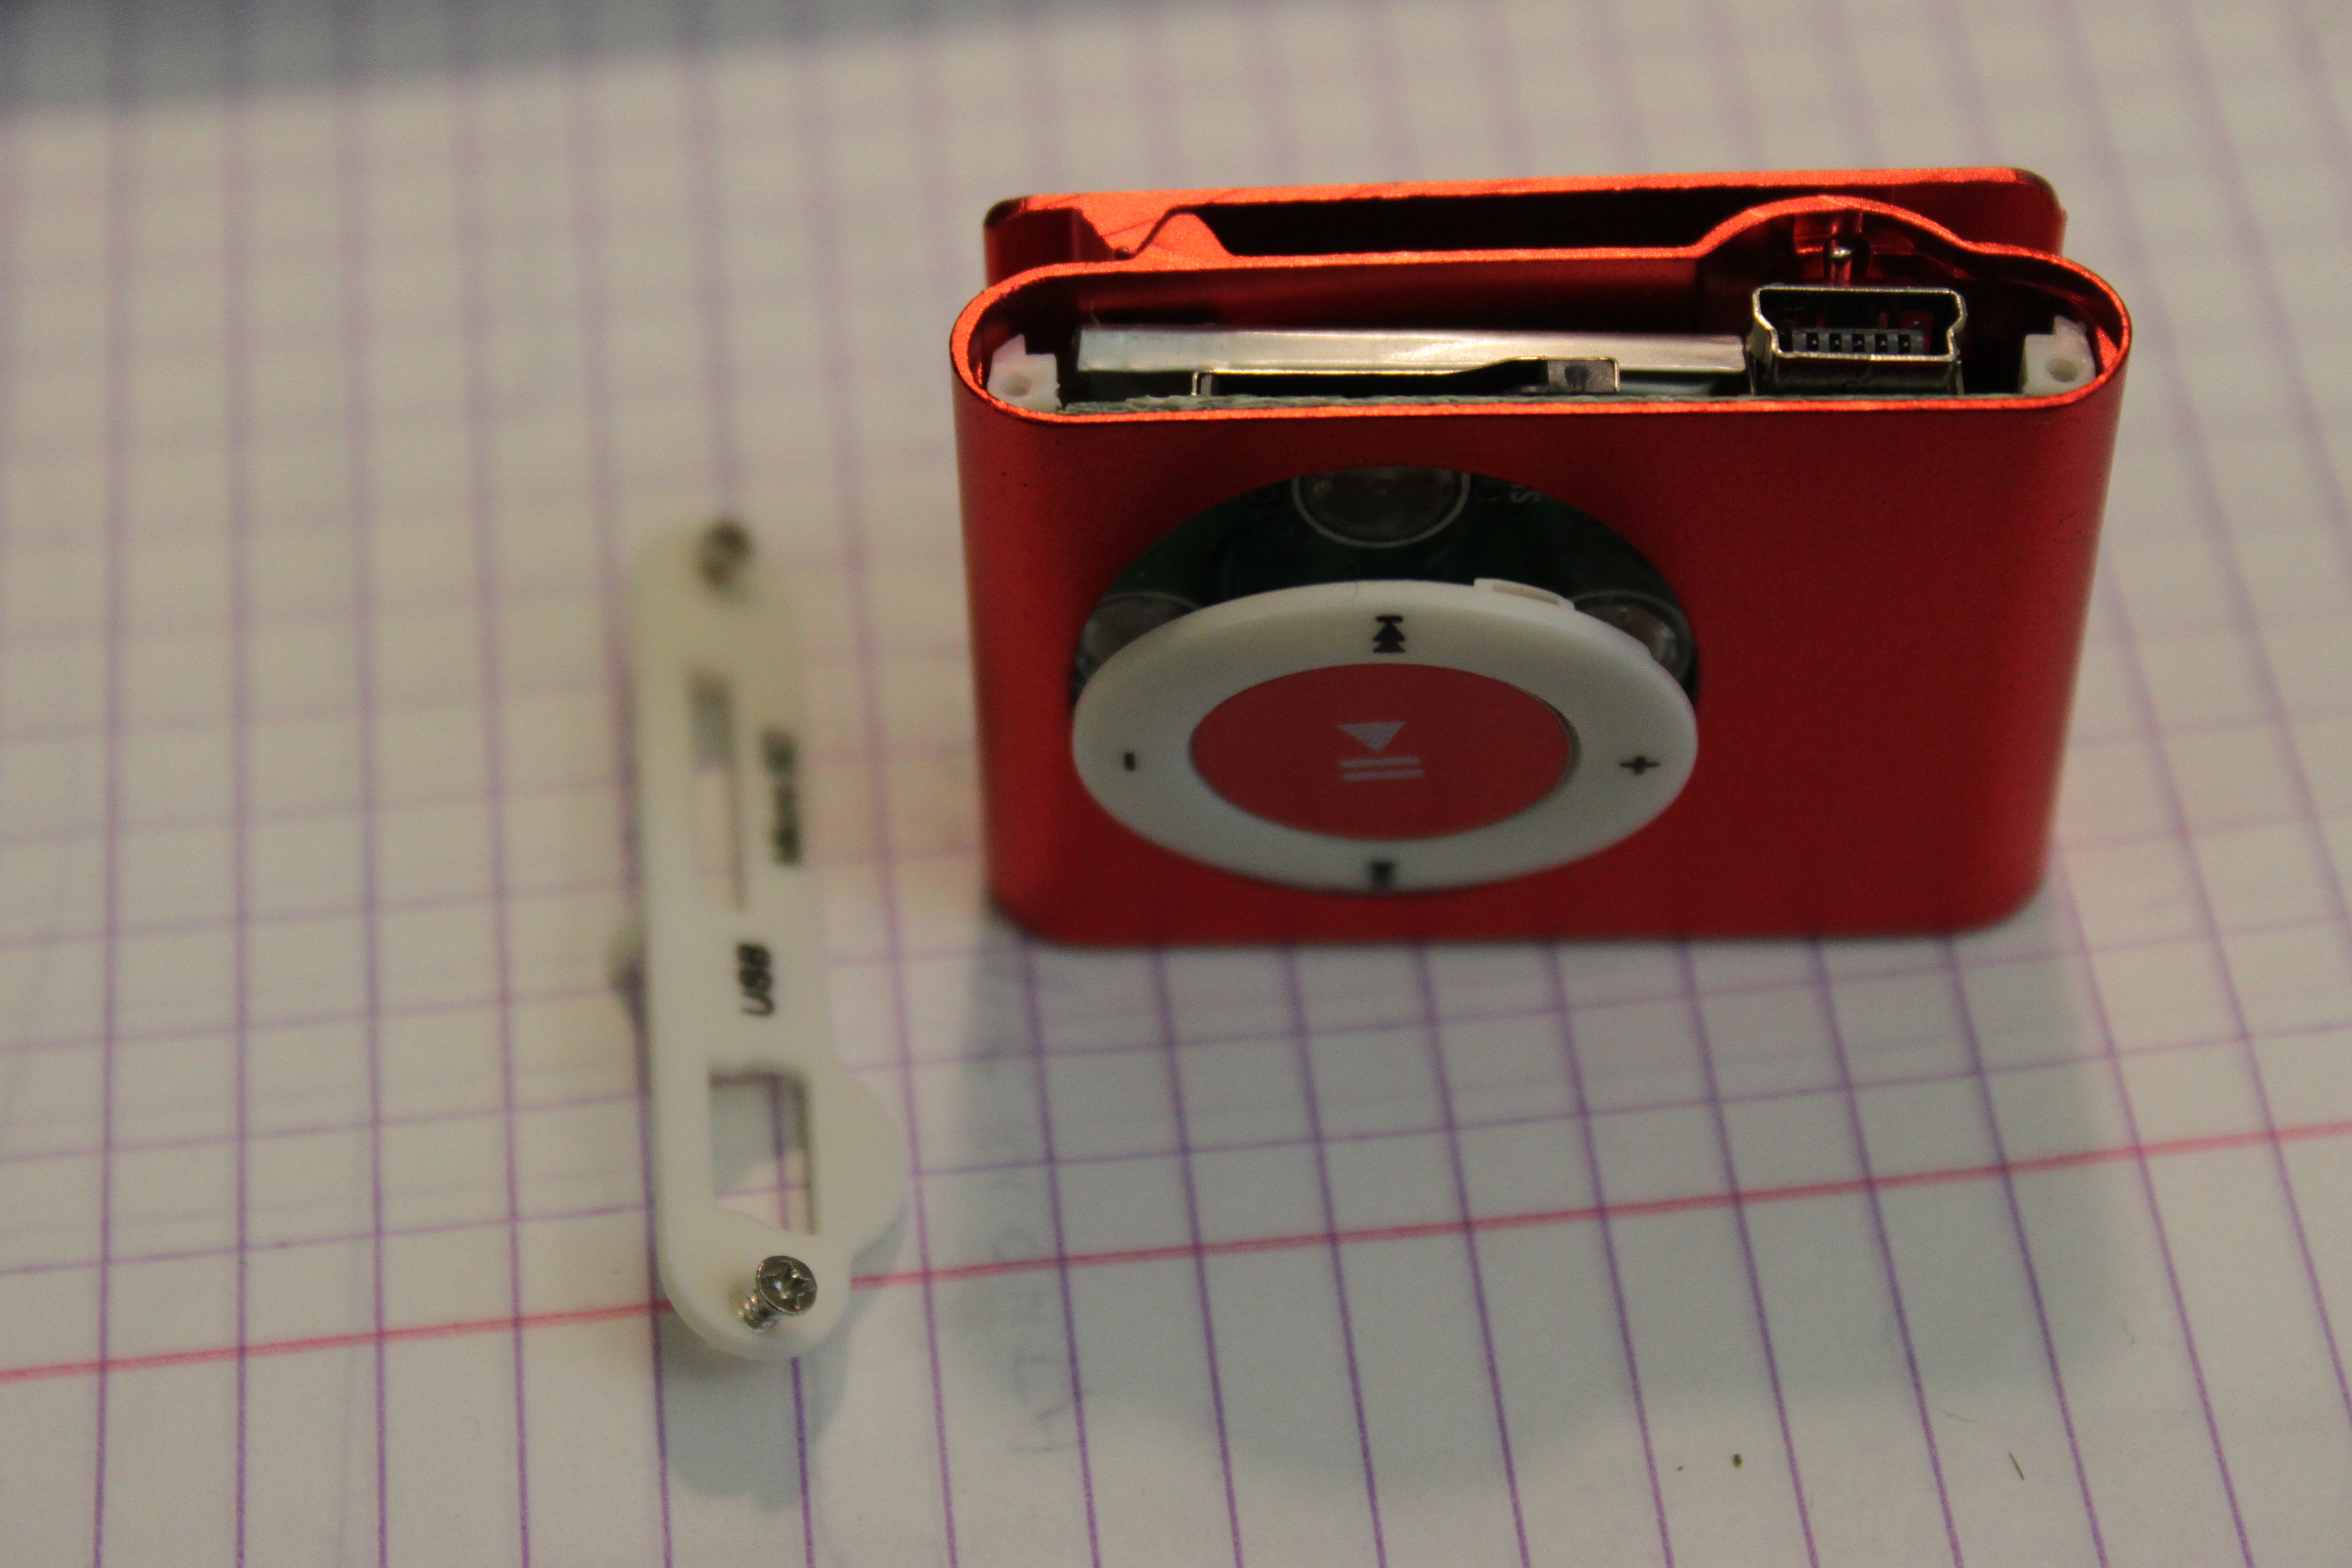 From the bottom side are power switch and audio jack 3.5.